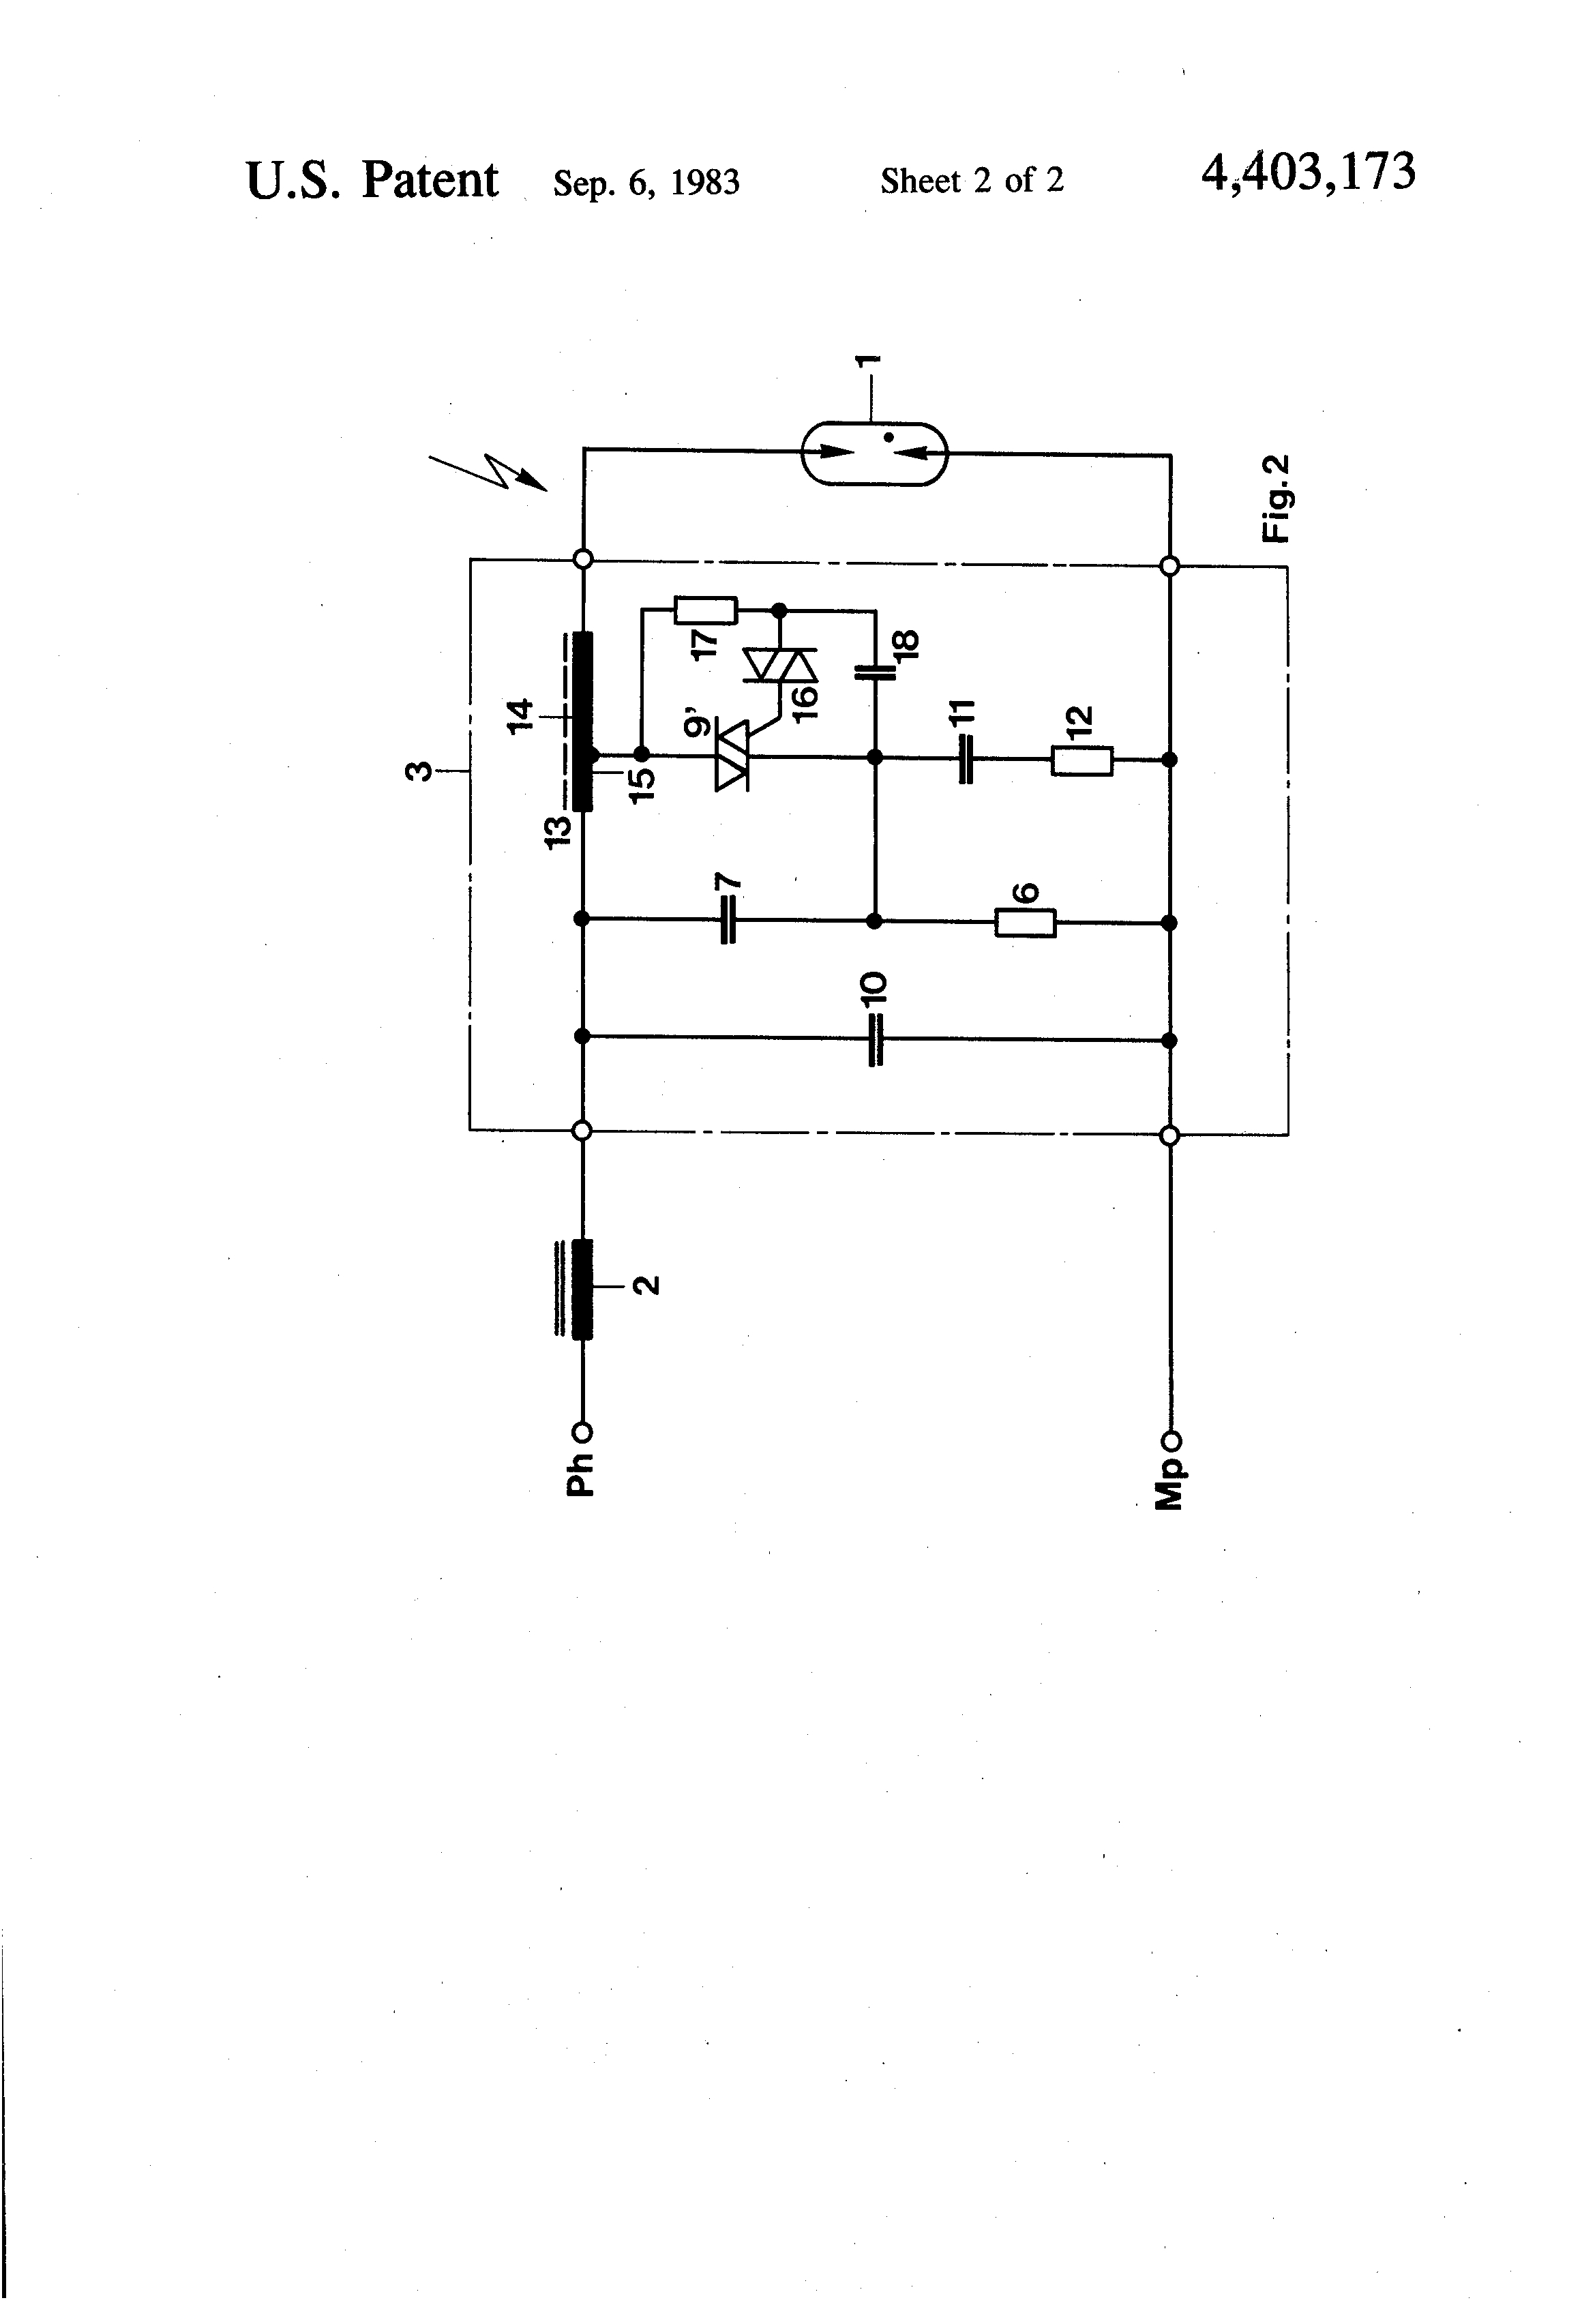 high pressure sodium ballast wiring diagram Collection-High Pressure sodium Ballast Wiring Diagram Inspirational Wiring A High Pressure sodium Ballast Wiring Diagram 19-j